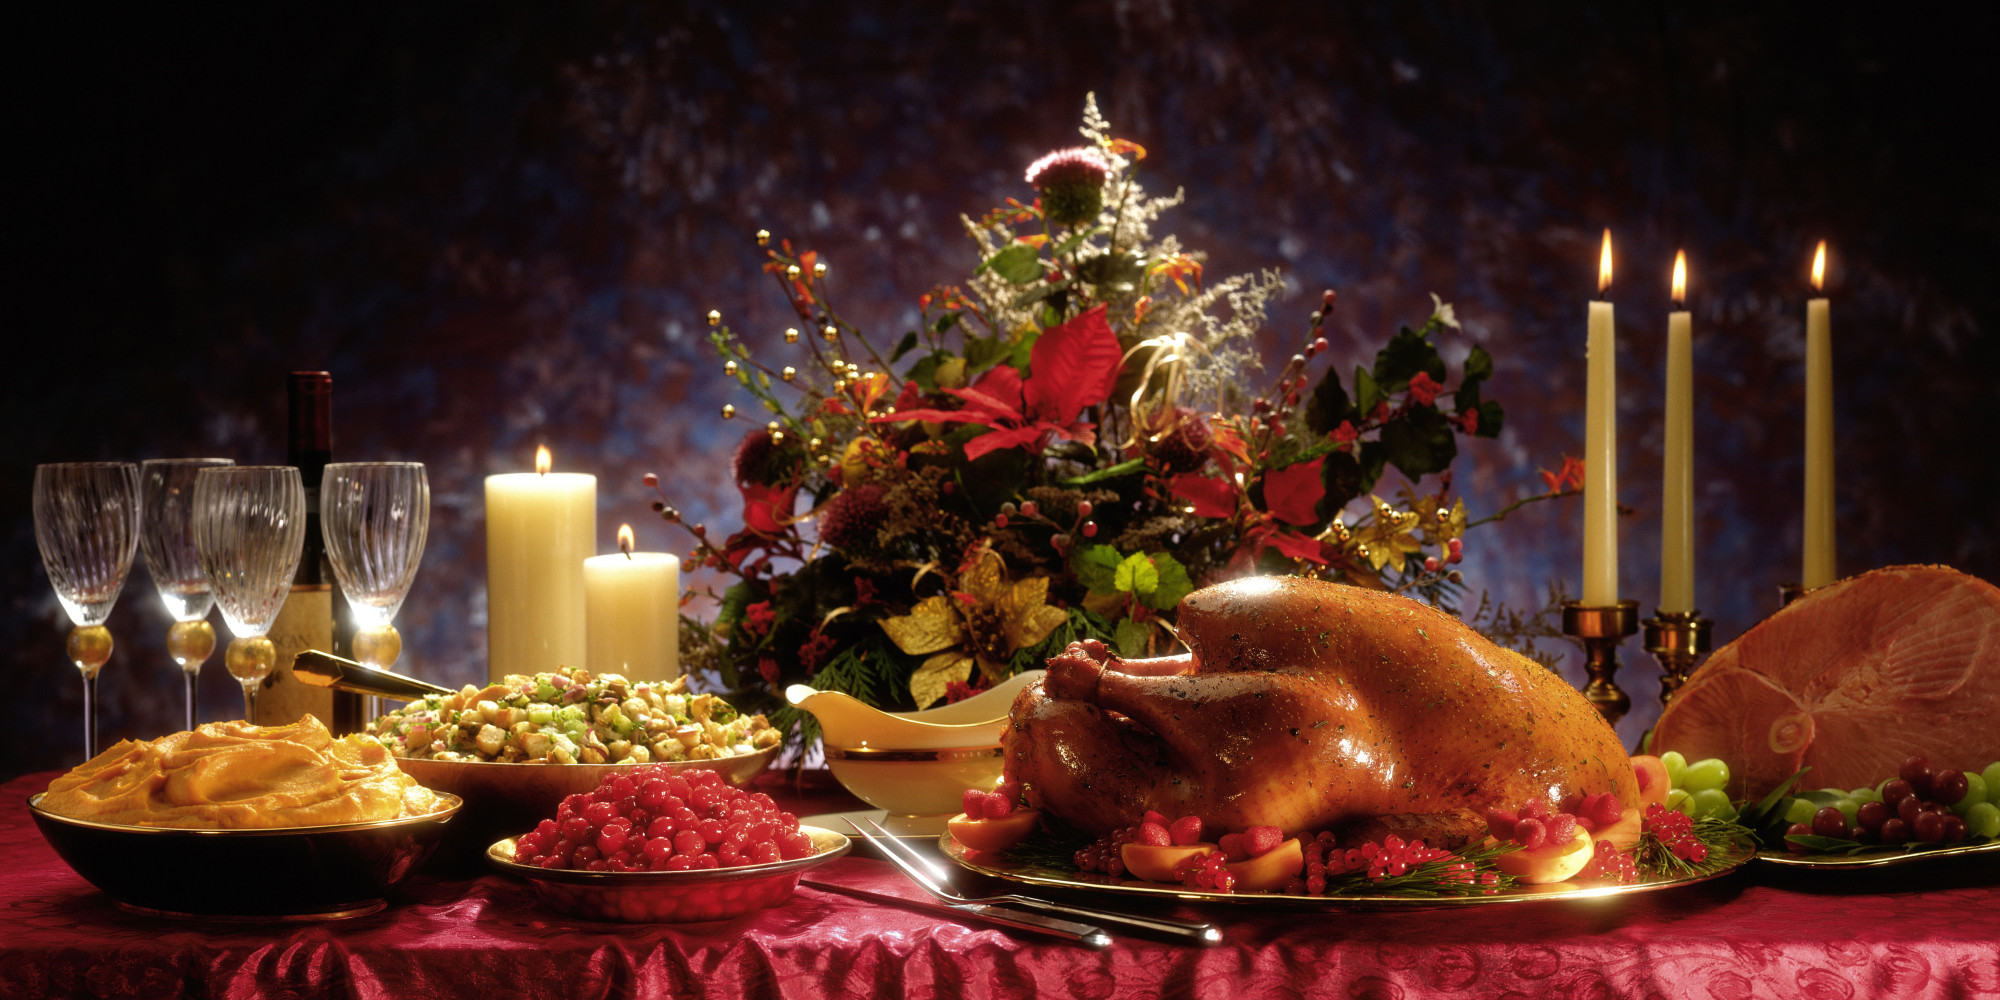 Thanksgiving Turkey Dinner Background